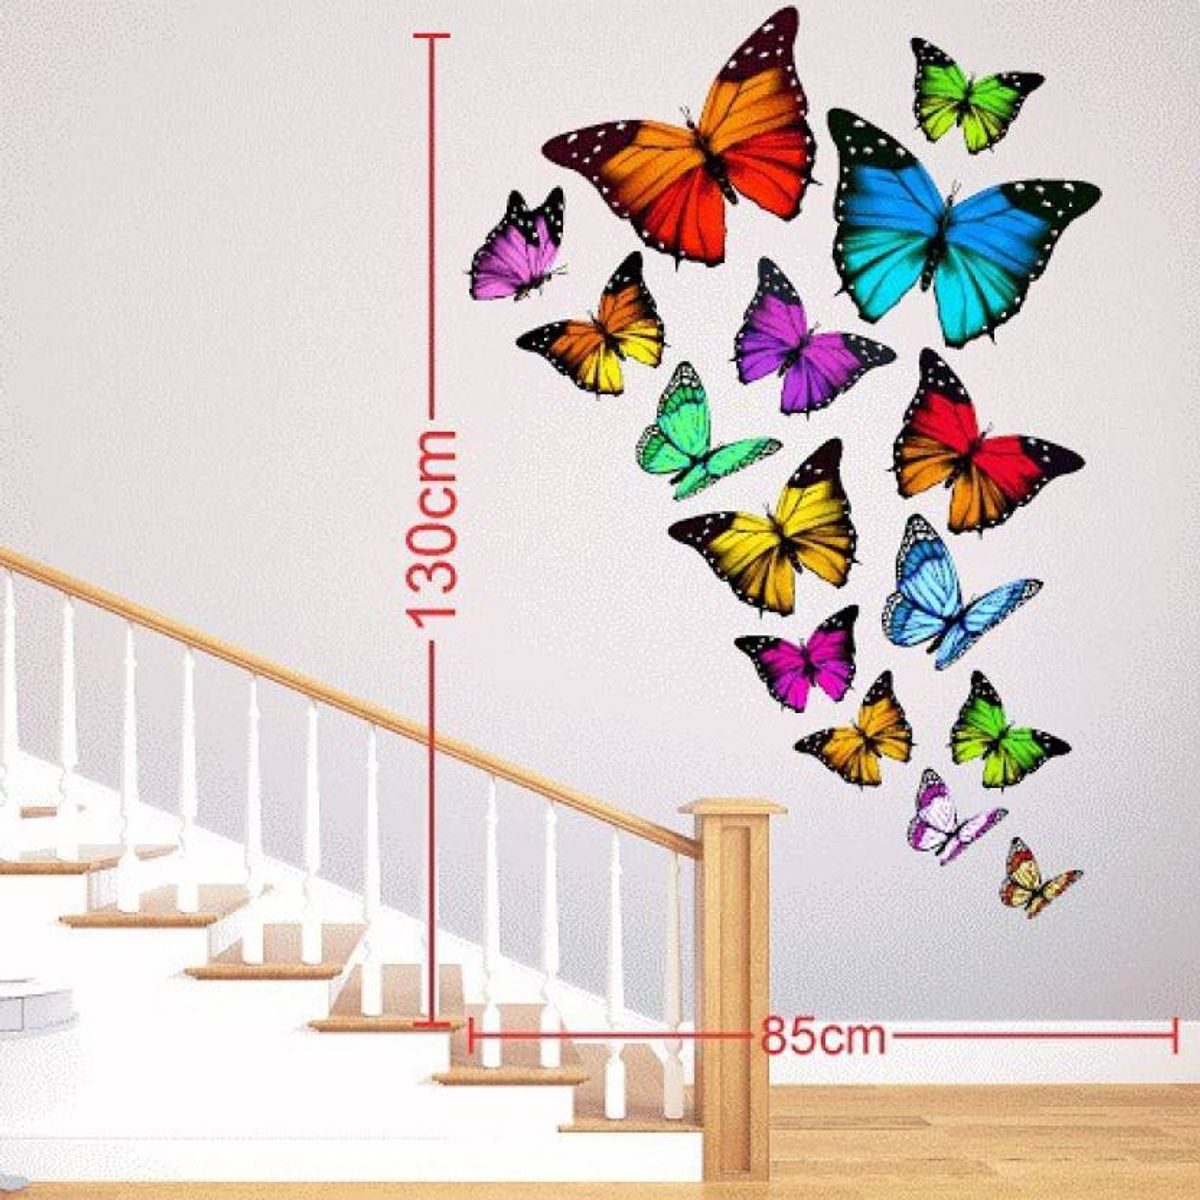 Large Wall Stickers Sticker  Pack of 1